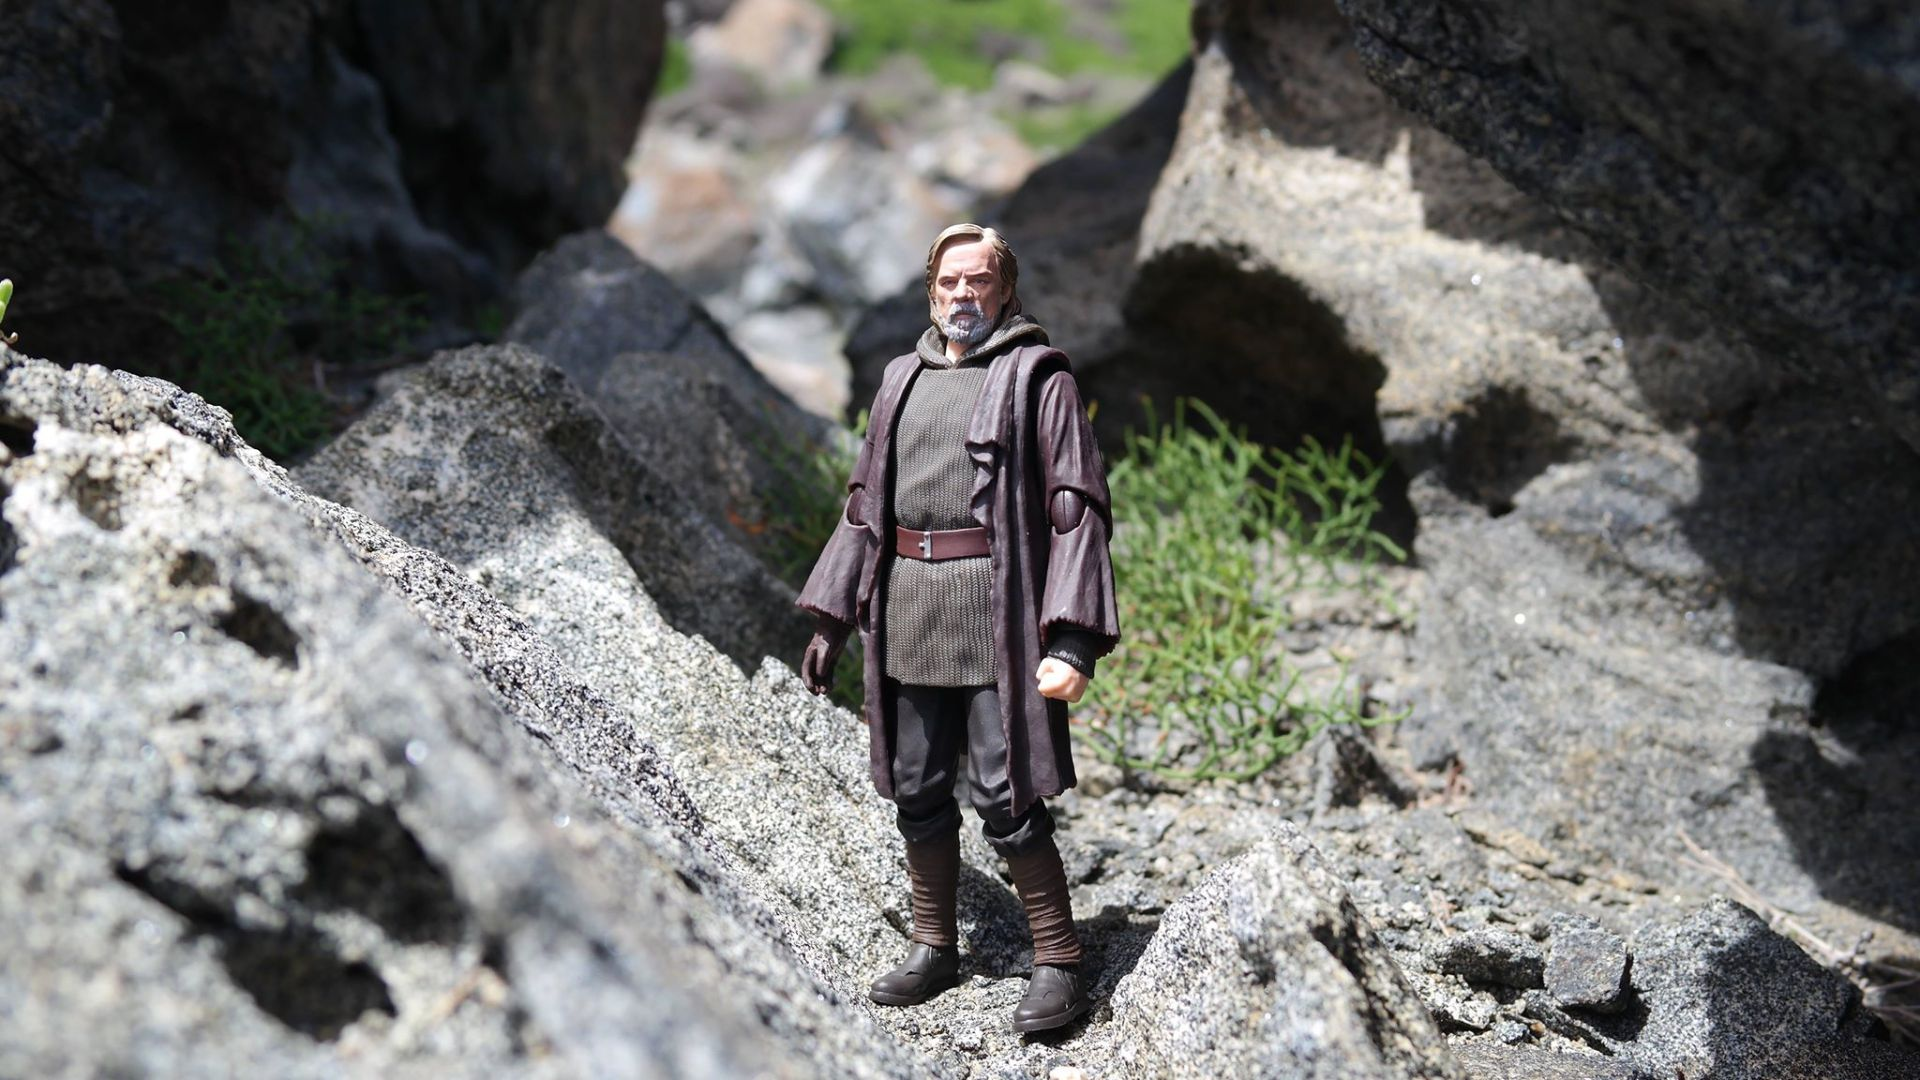 Luke Skywalker-Figuarts-Review-24